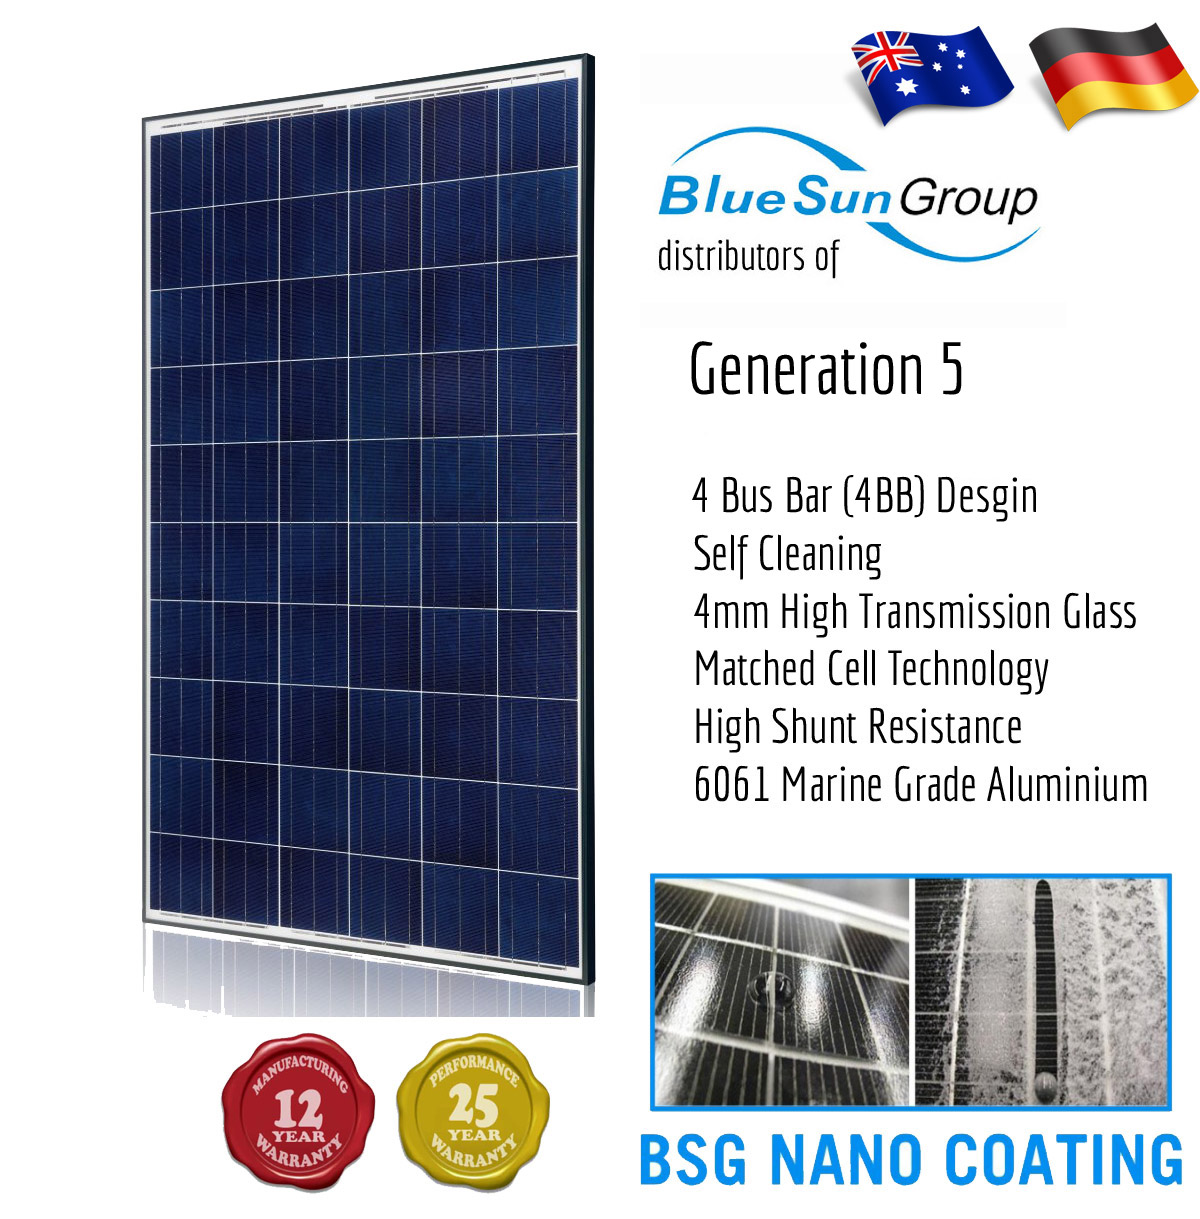 260w blue sun group panels